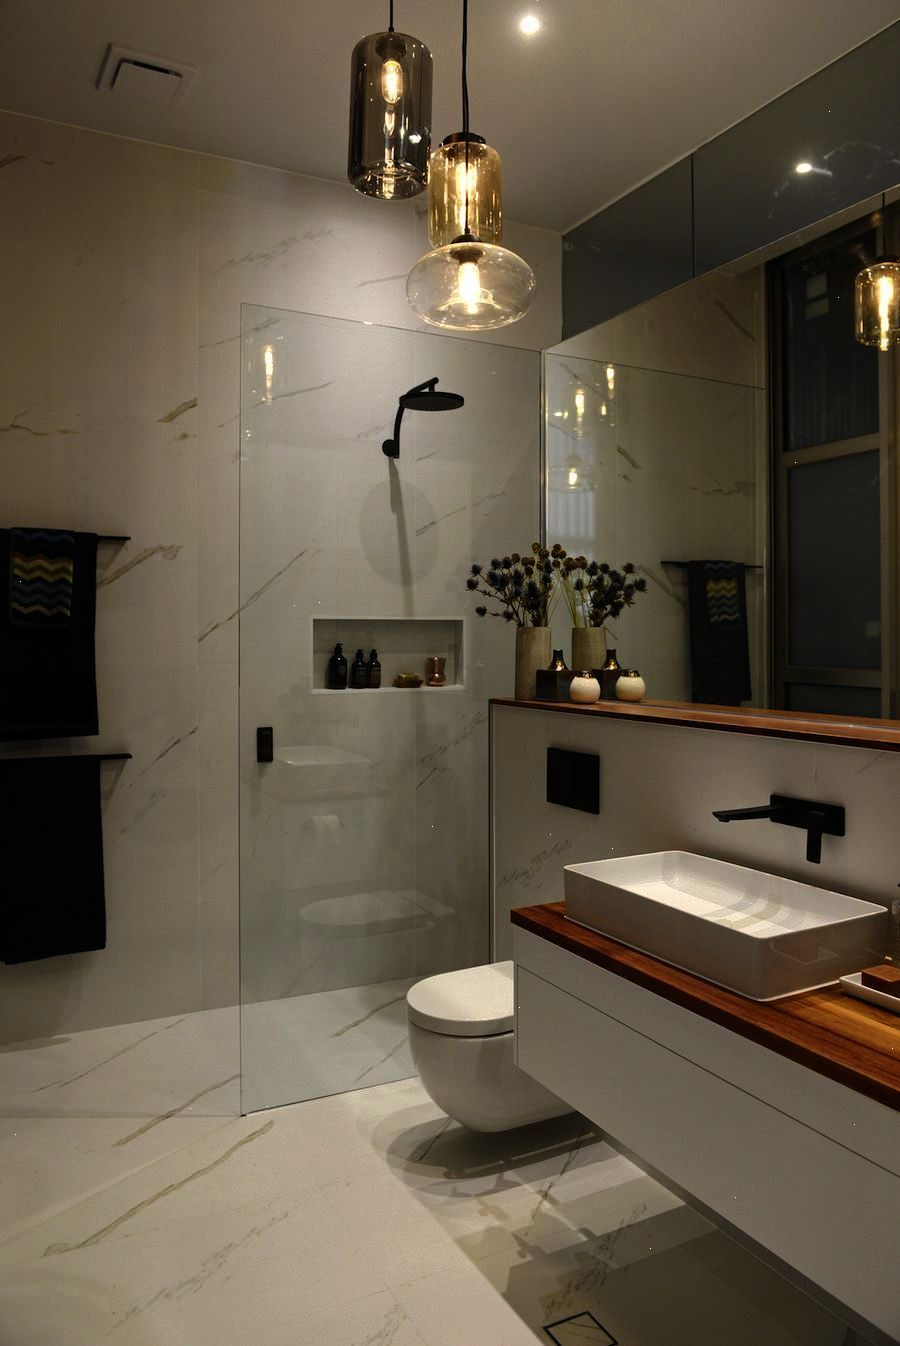 White marble wall tiles in bathroom \\/ wood shelf and wood bench in ...